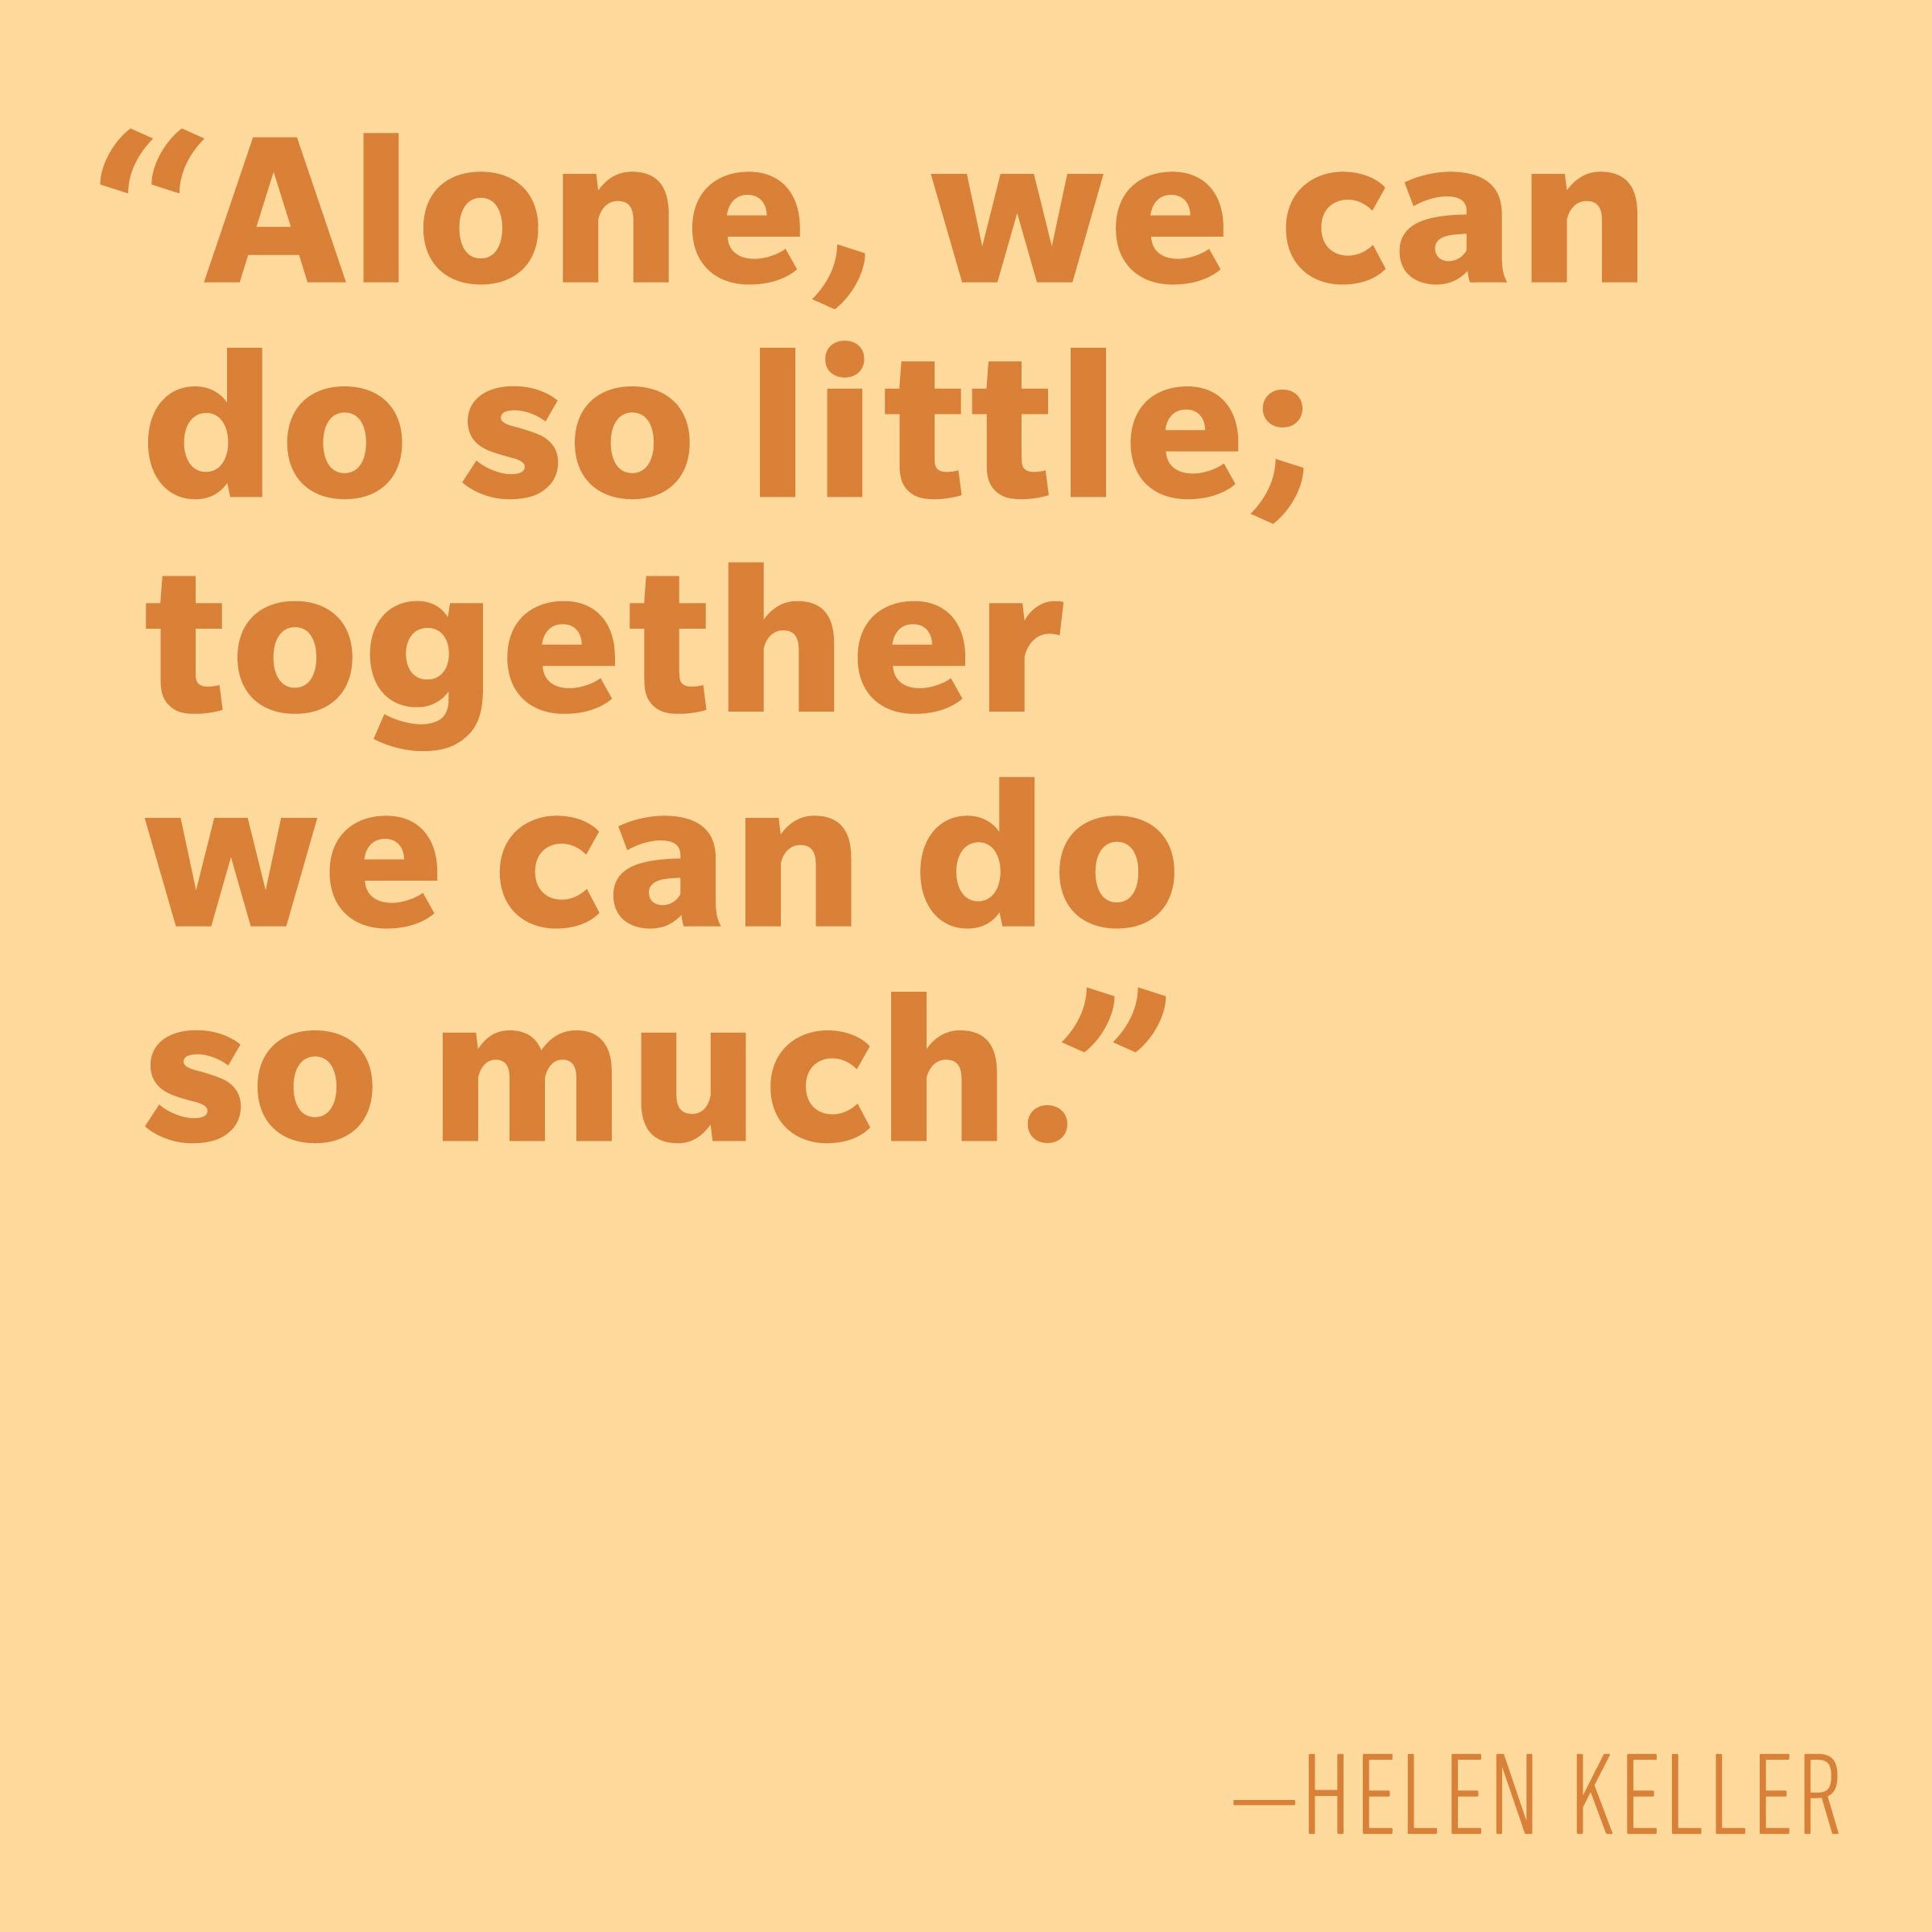 Motivational quotes - Helen Keller